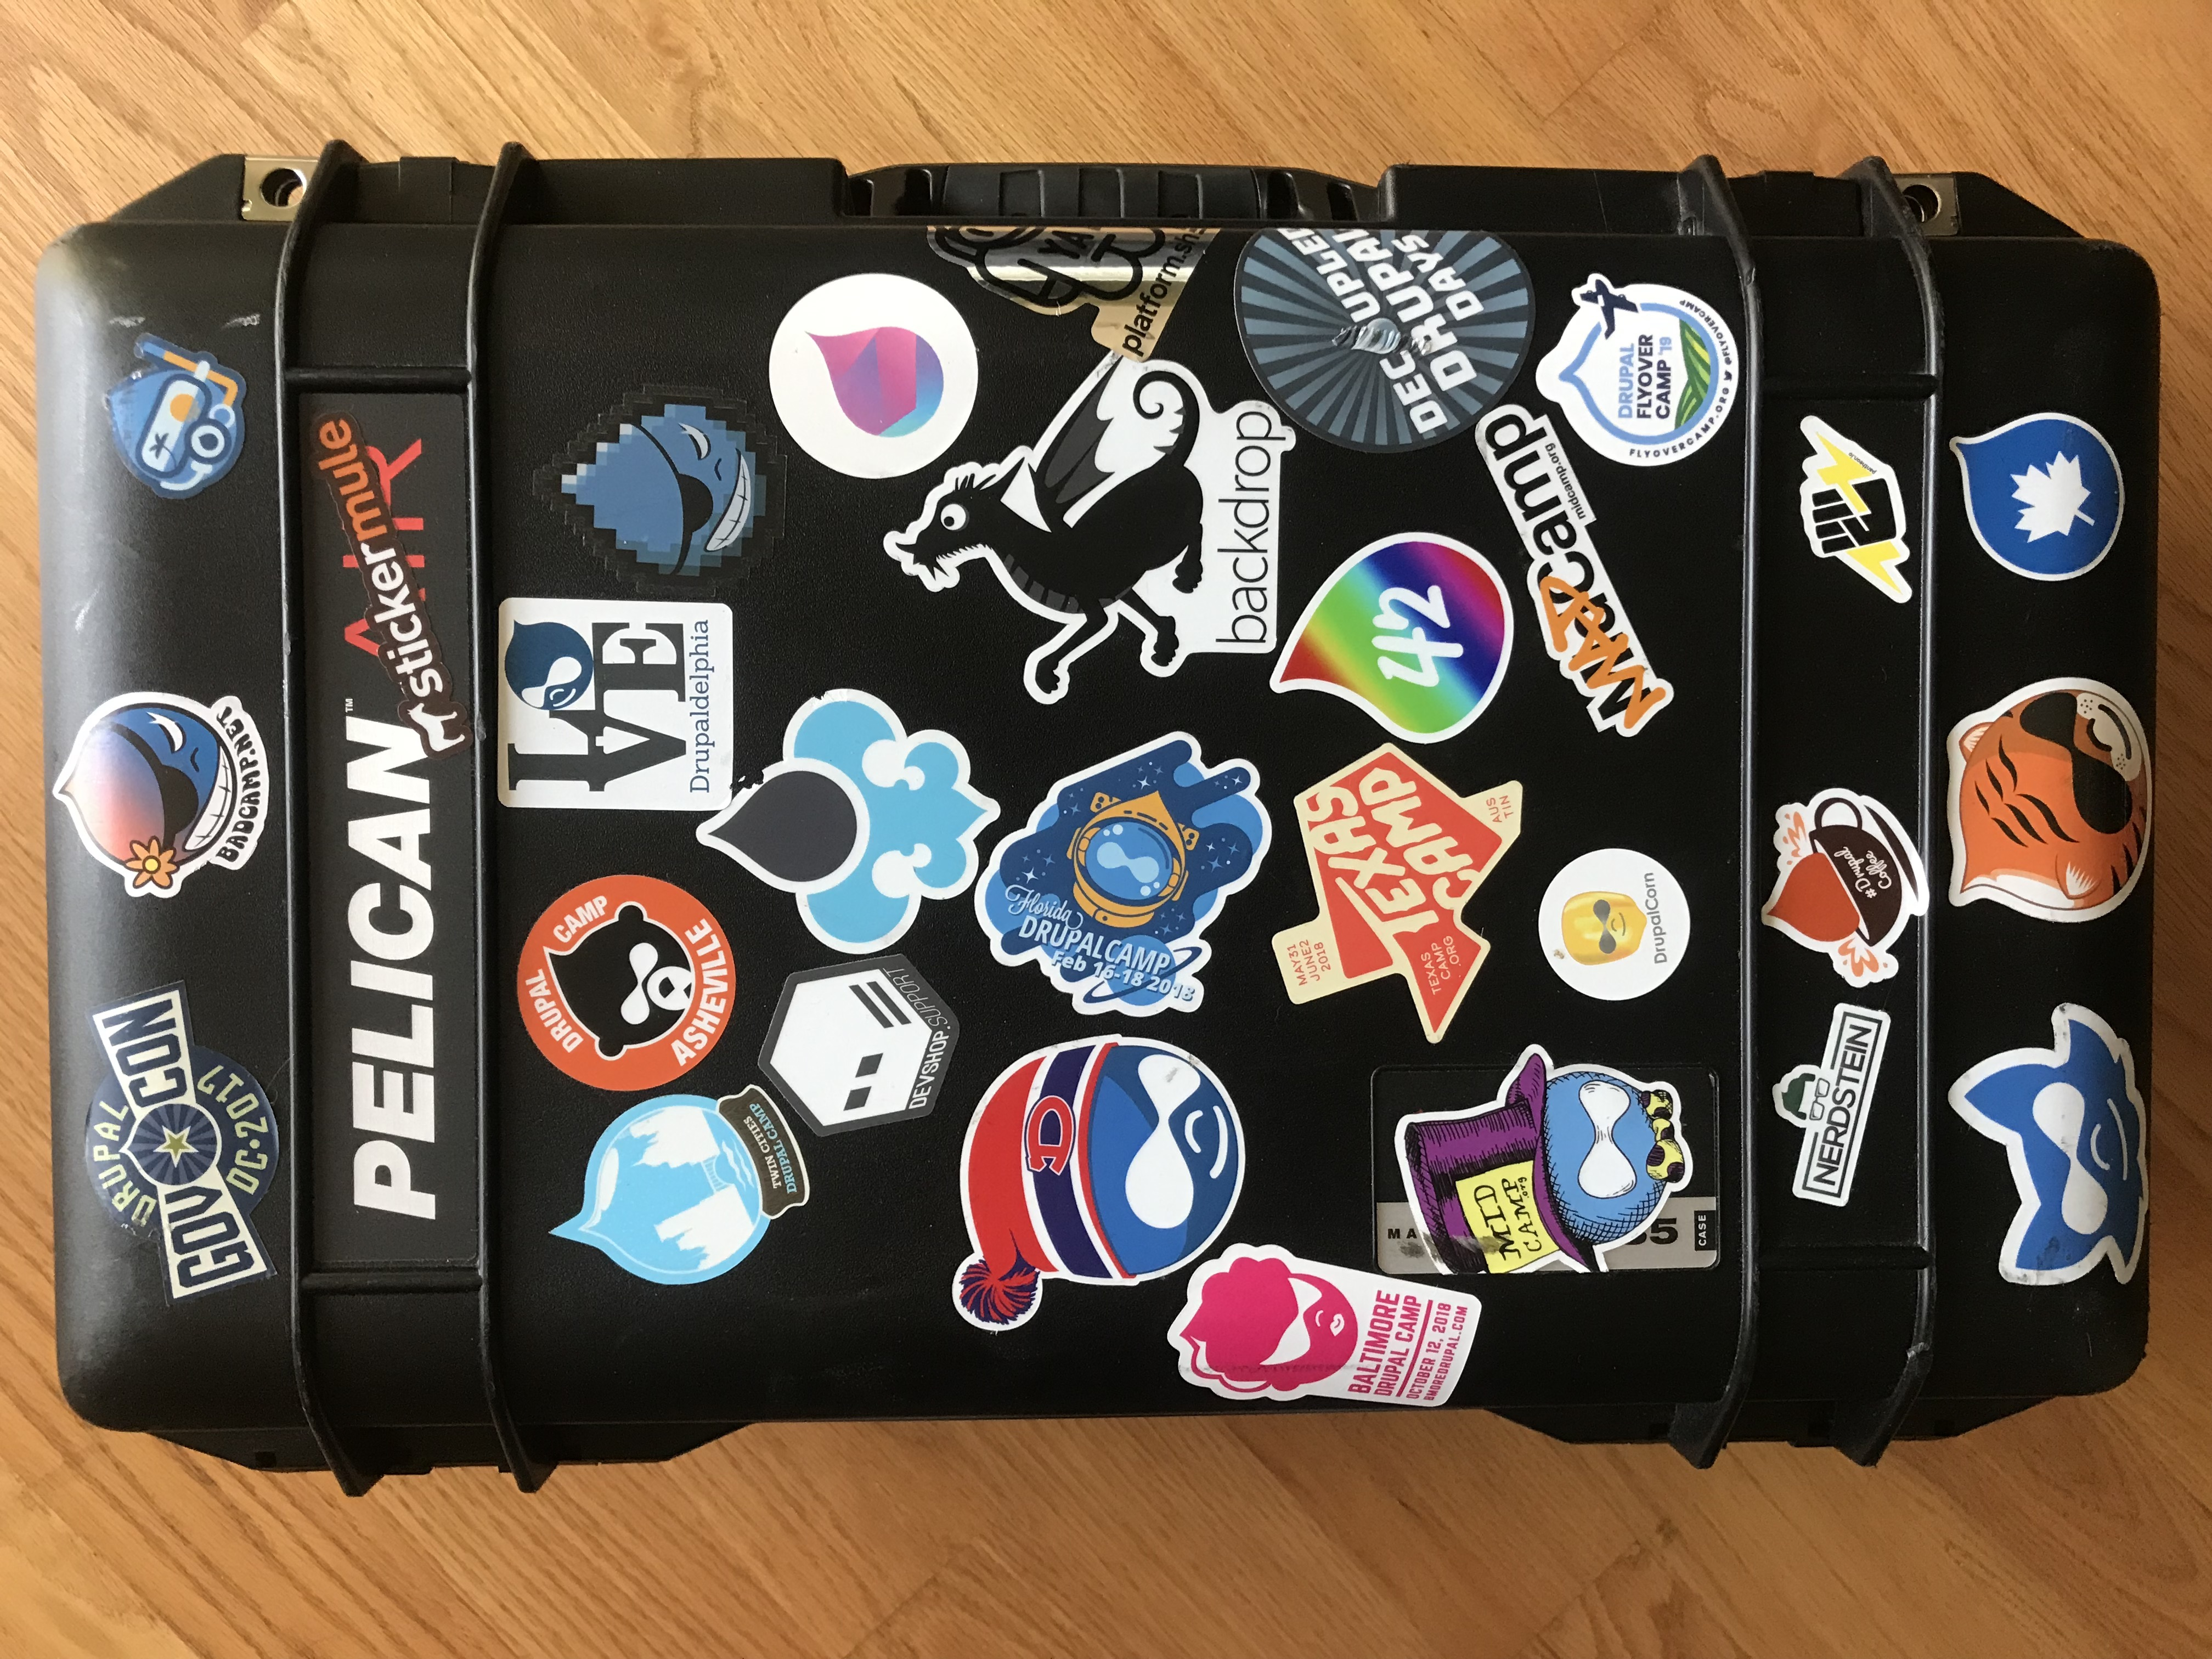 Pelican case covered in Drupal camp stickers